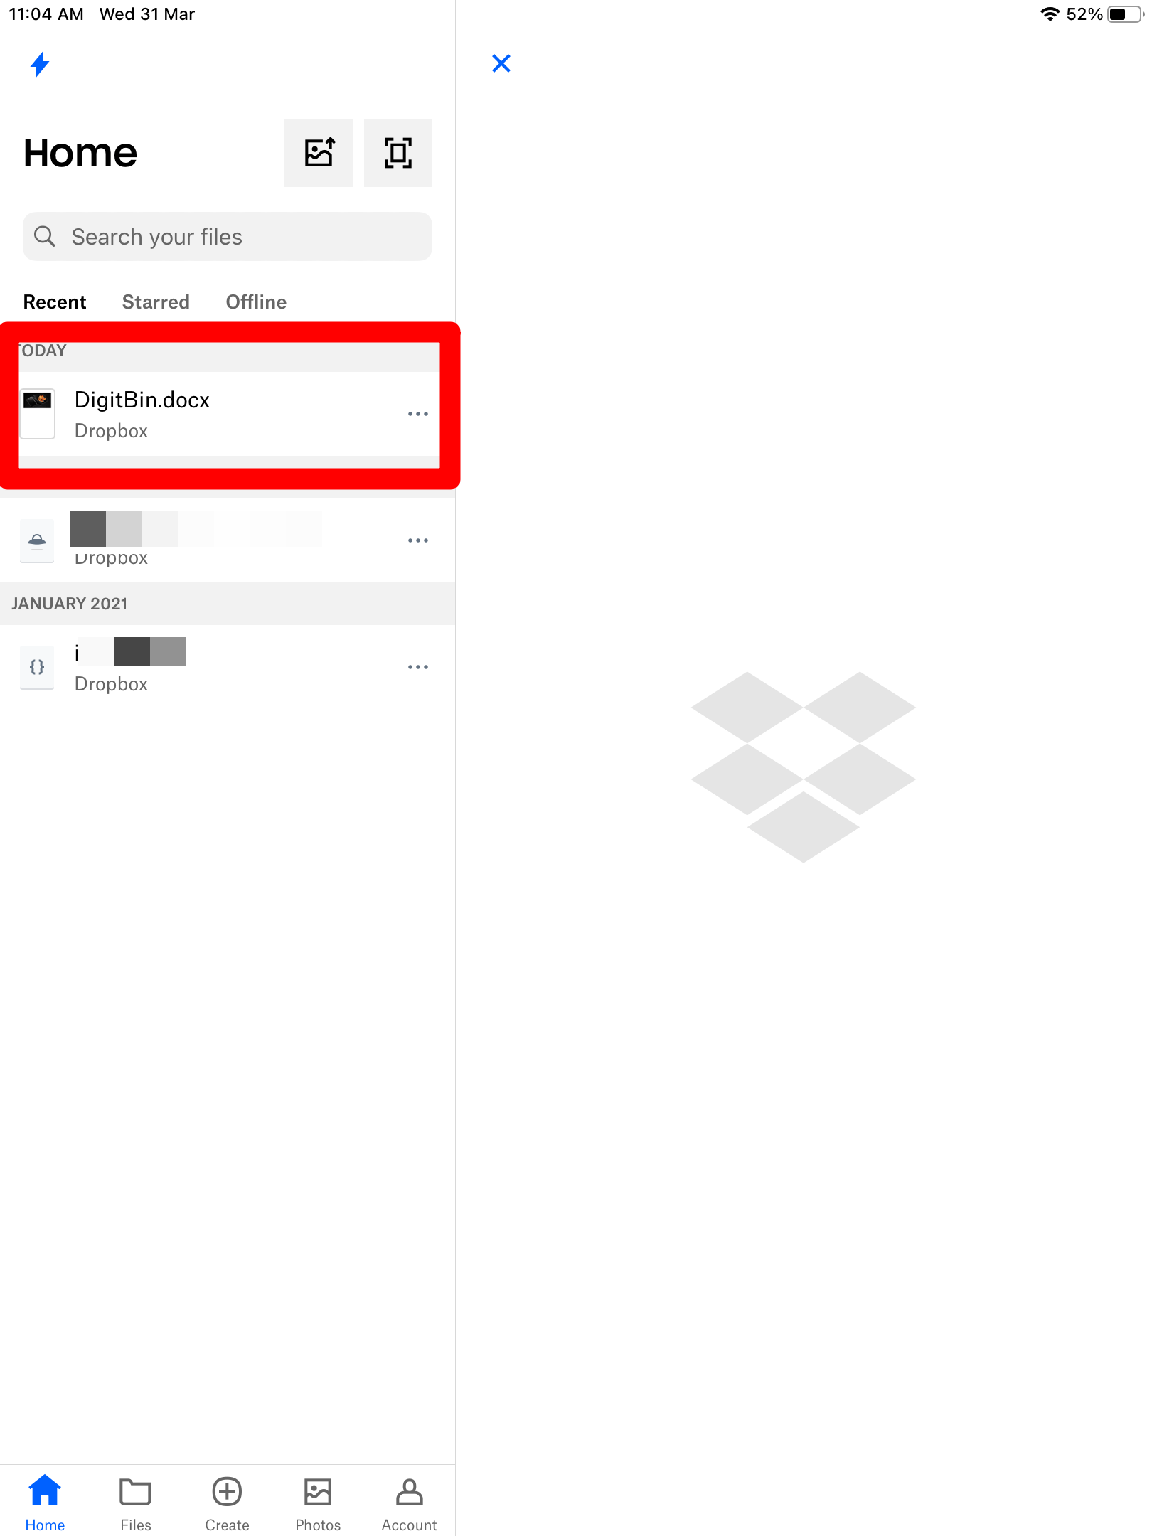 Select FIle to Share on Web